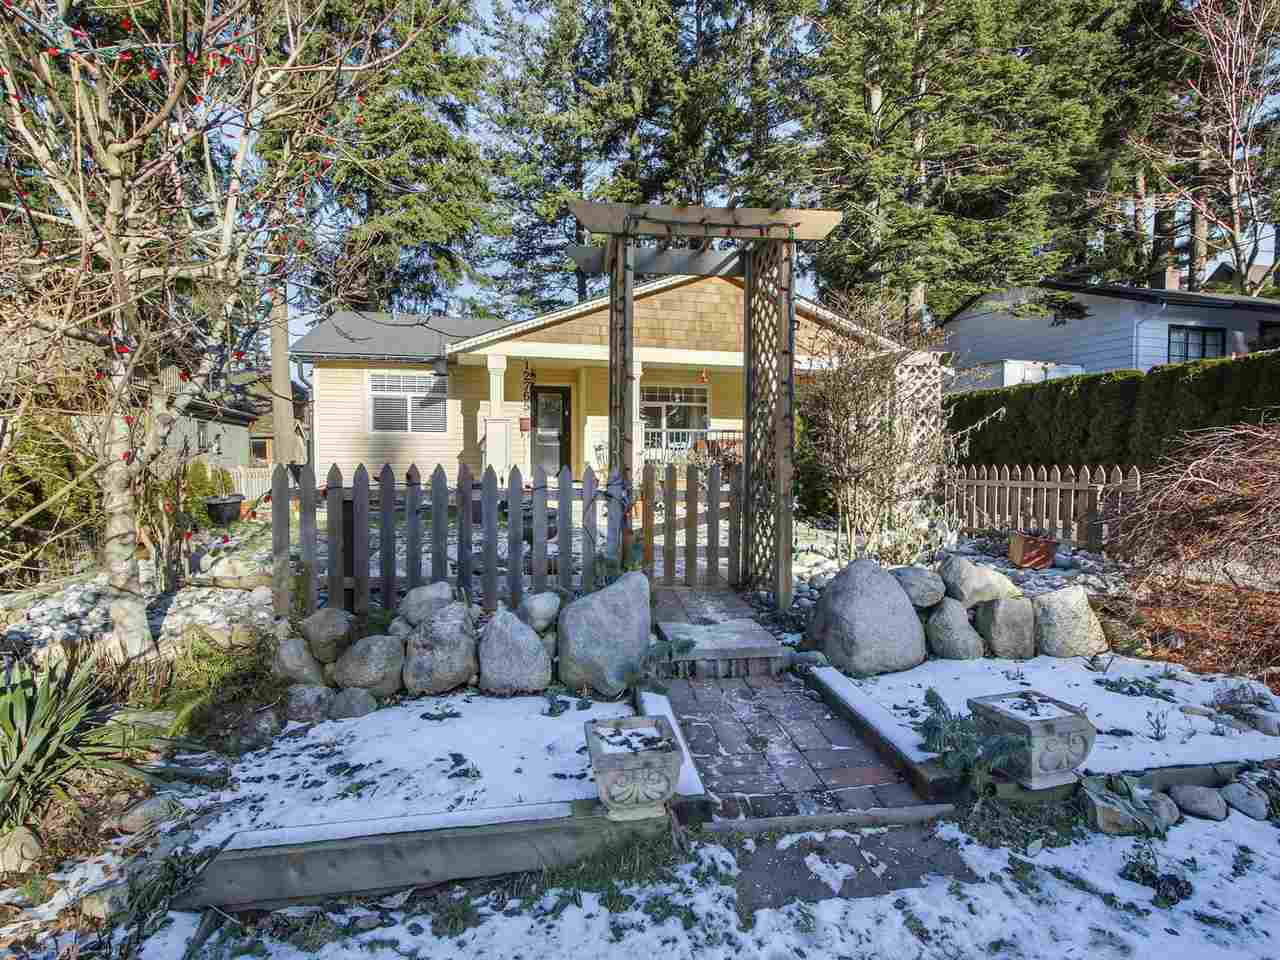 Main Photo: 12765 15A Avenue in Surrey: Crescent Bch Ocean Pk. House for sale (South Surrey White Rock)  : MLS®# R2153221